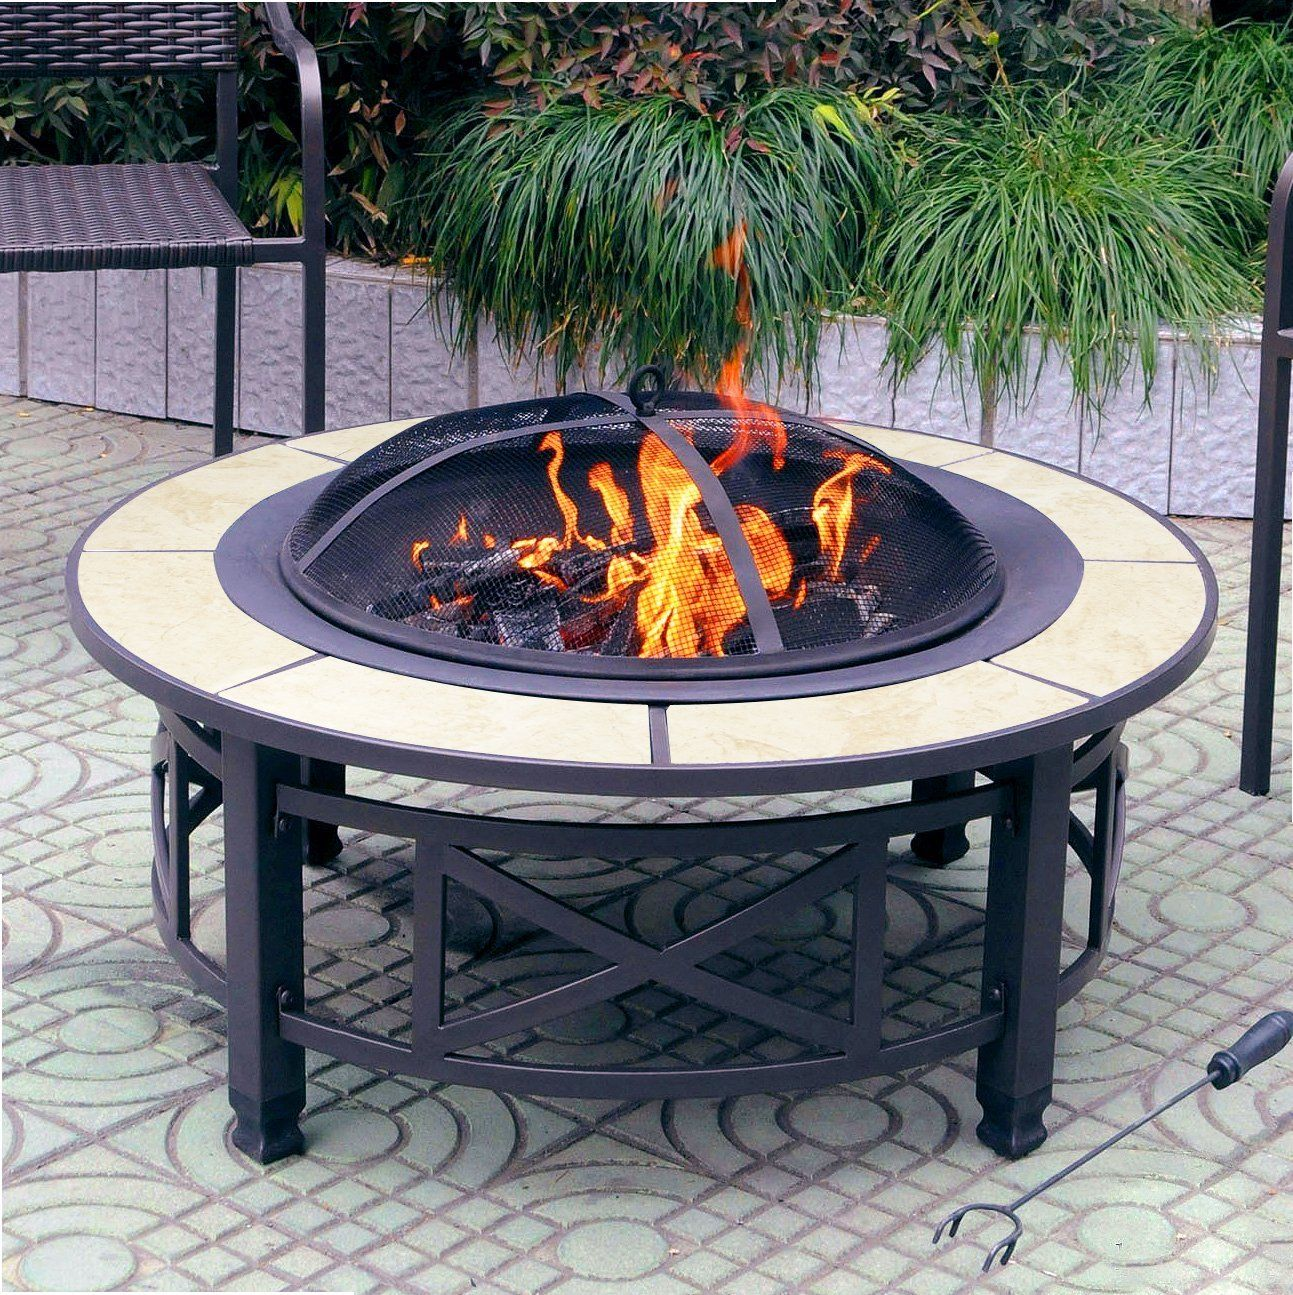 Centurion Supports Nusku Luxurious And Premium Multi Functional Black With Ceramic Tiles 360 Outdoor Best Fire Pitdiy